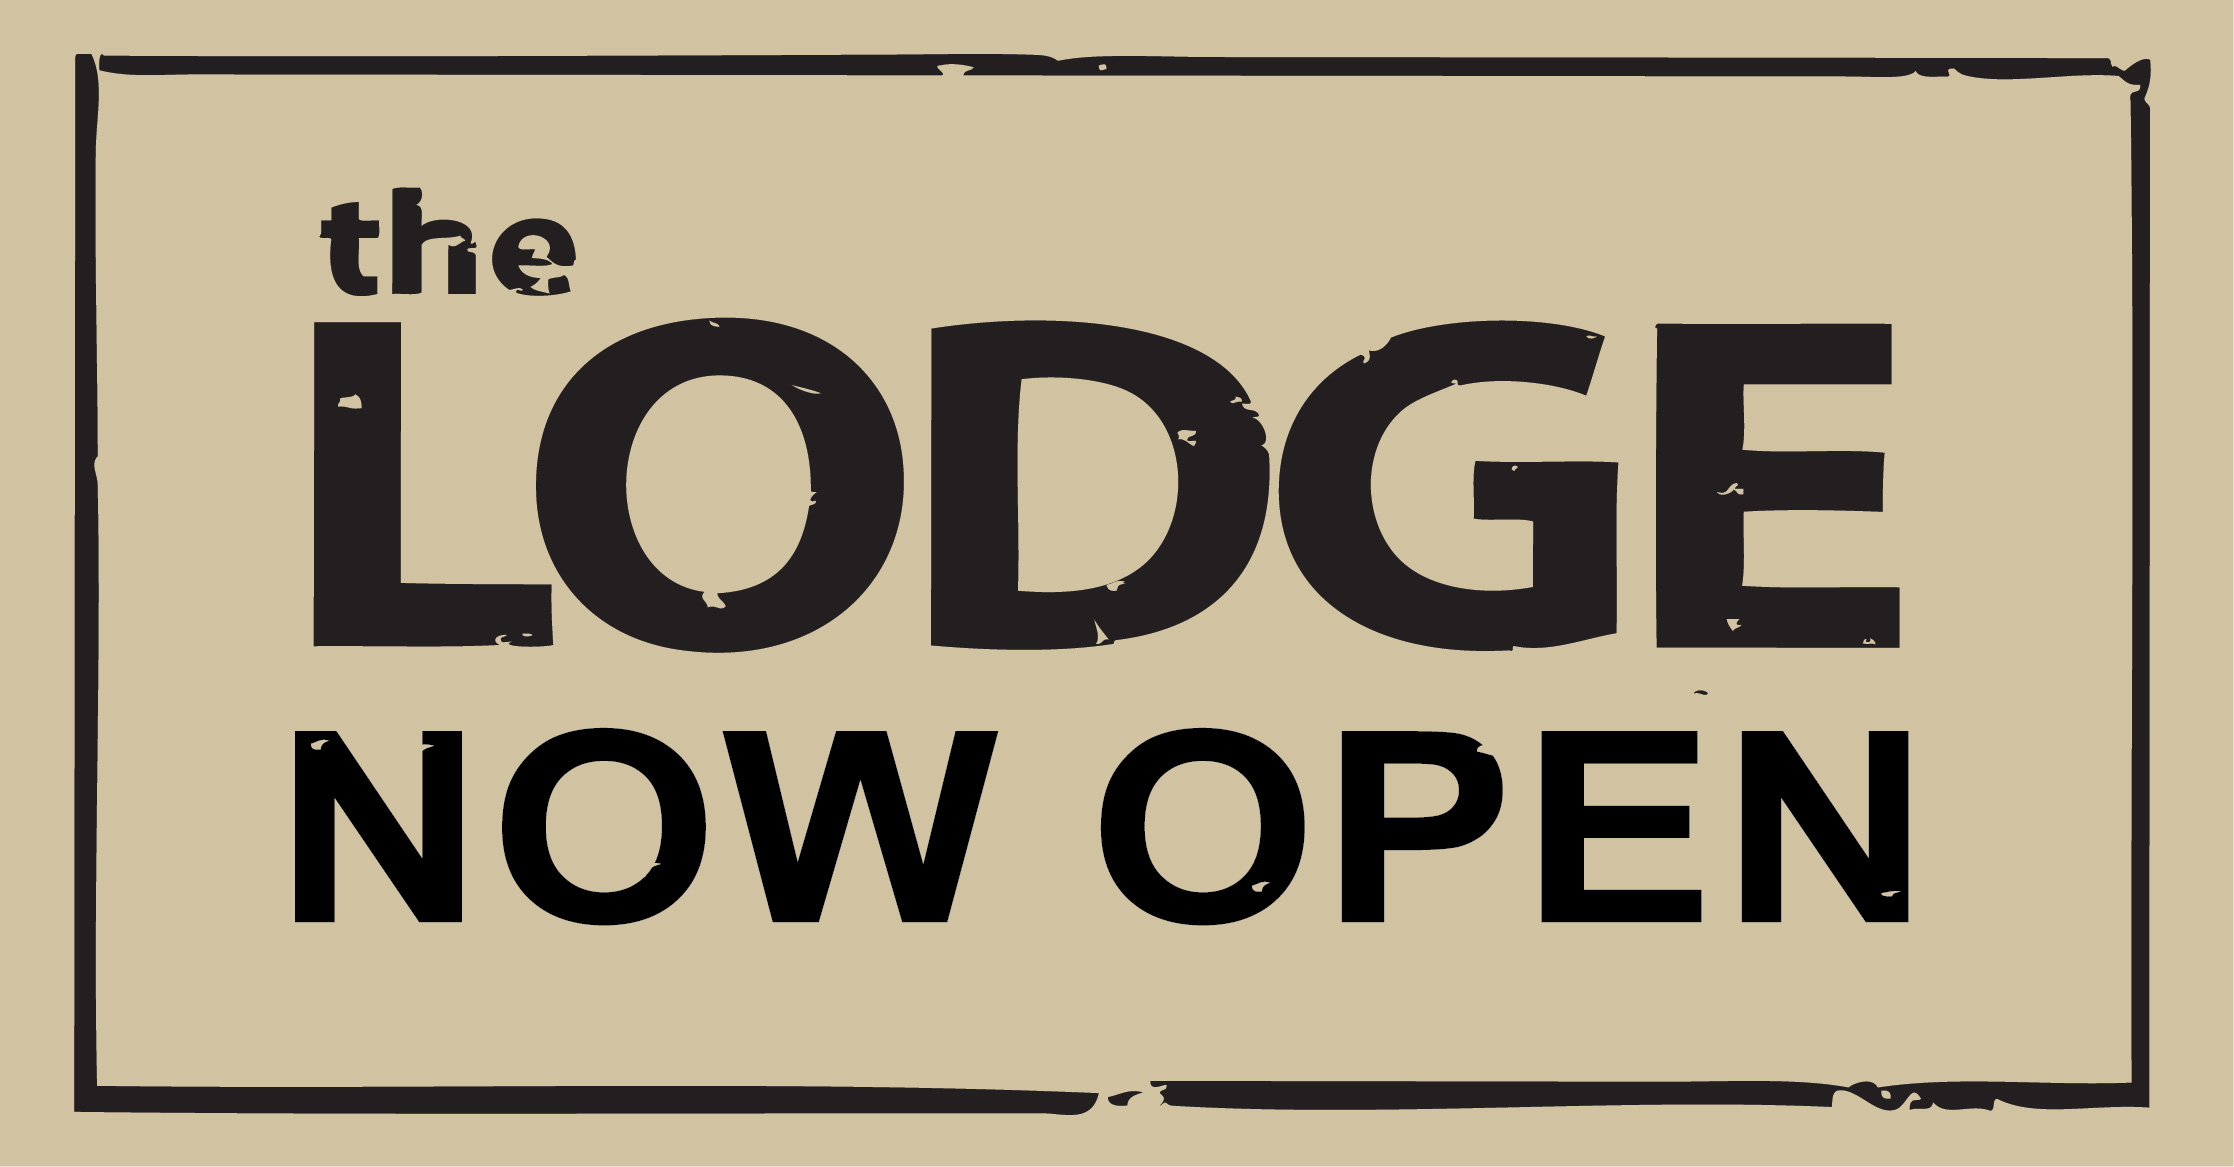 THE LODGE NOW OPEN